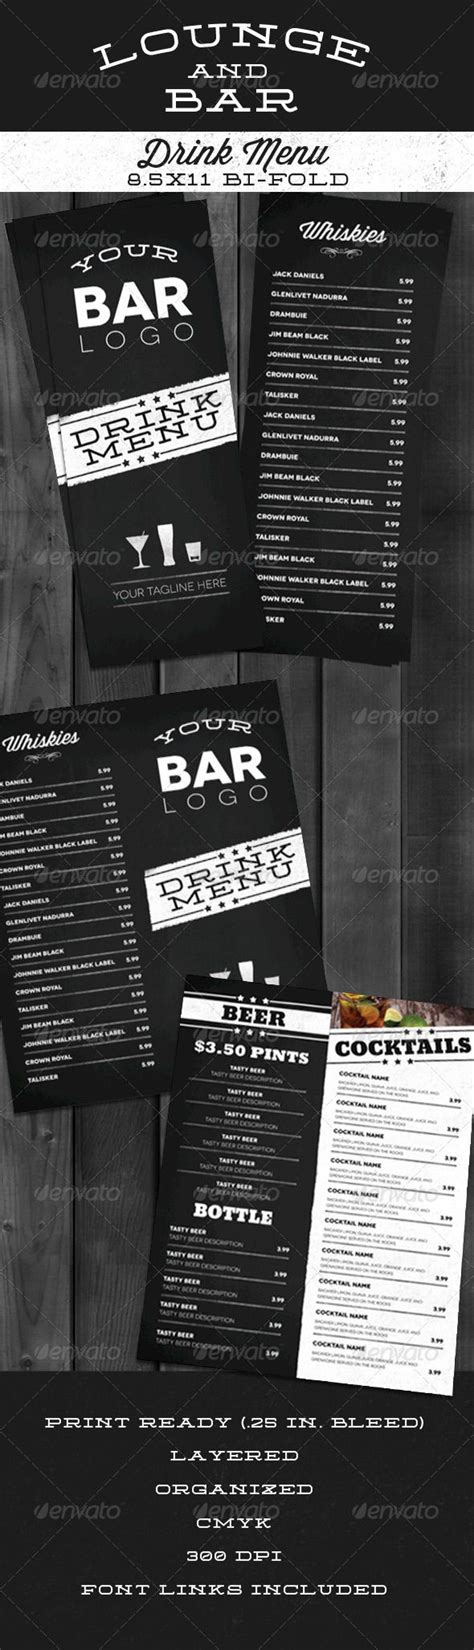 bar drink menu template 17 best ideas about bar menu on menu design